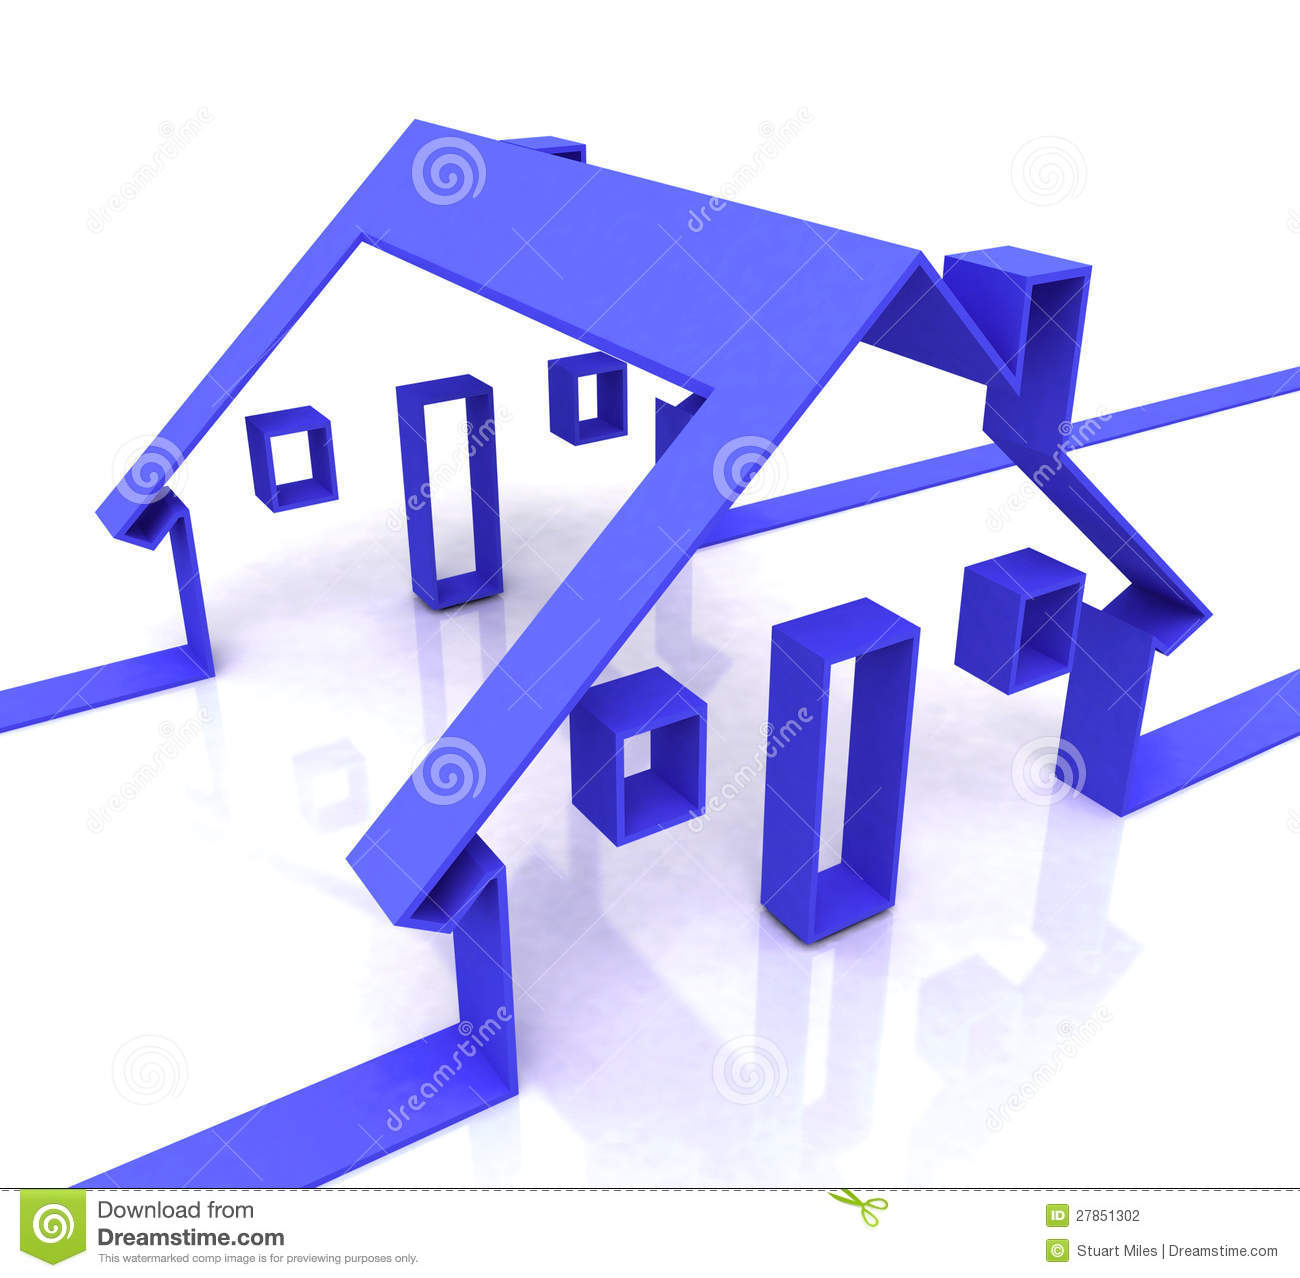 House For Rent Clip Art: Blue House Symbol Shows Real Estate Or Rentals Stock